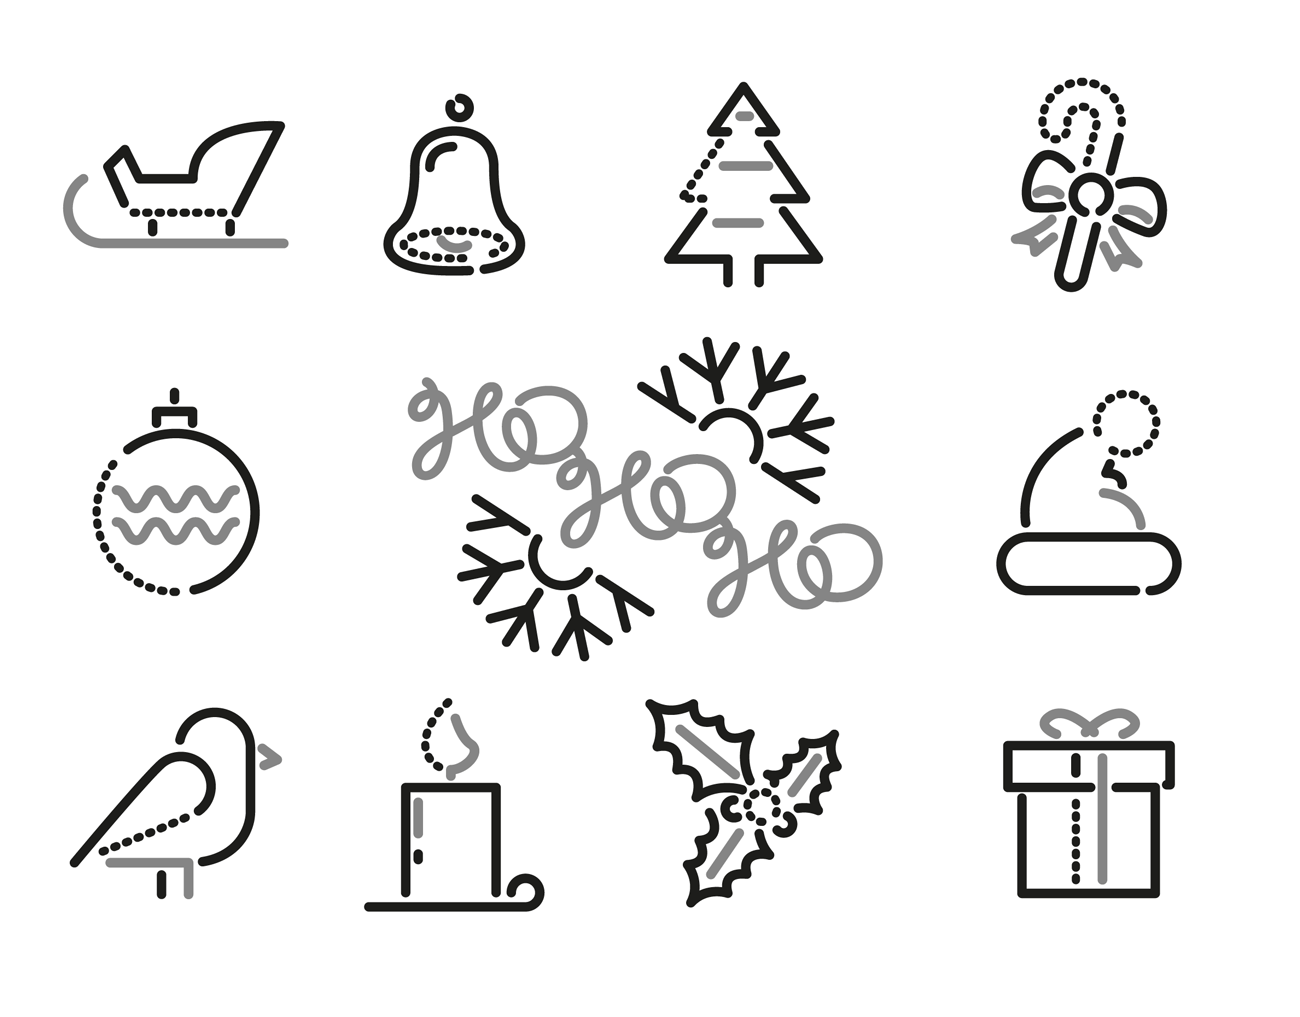 xmas-icons-hohoho-dribbble